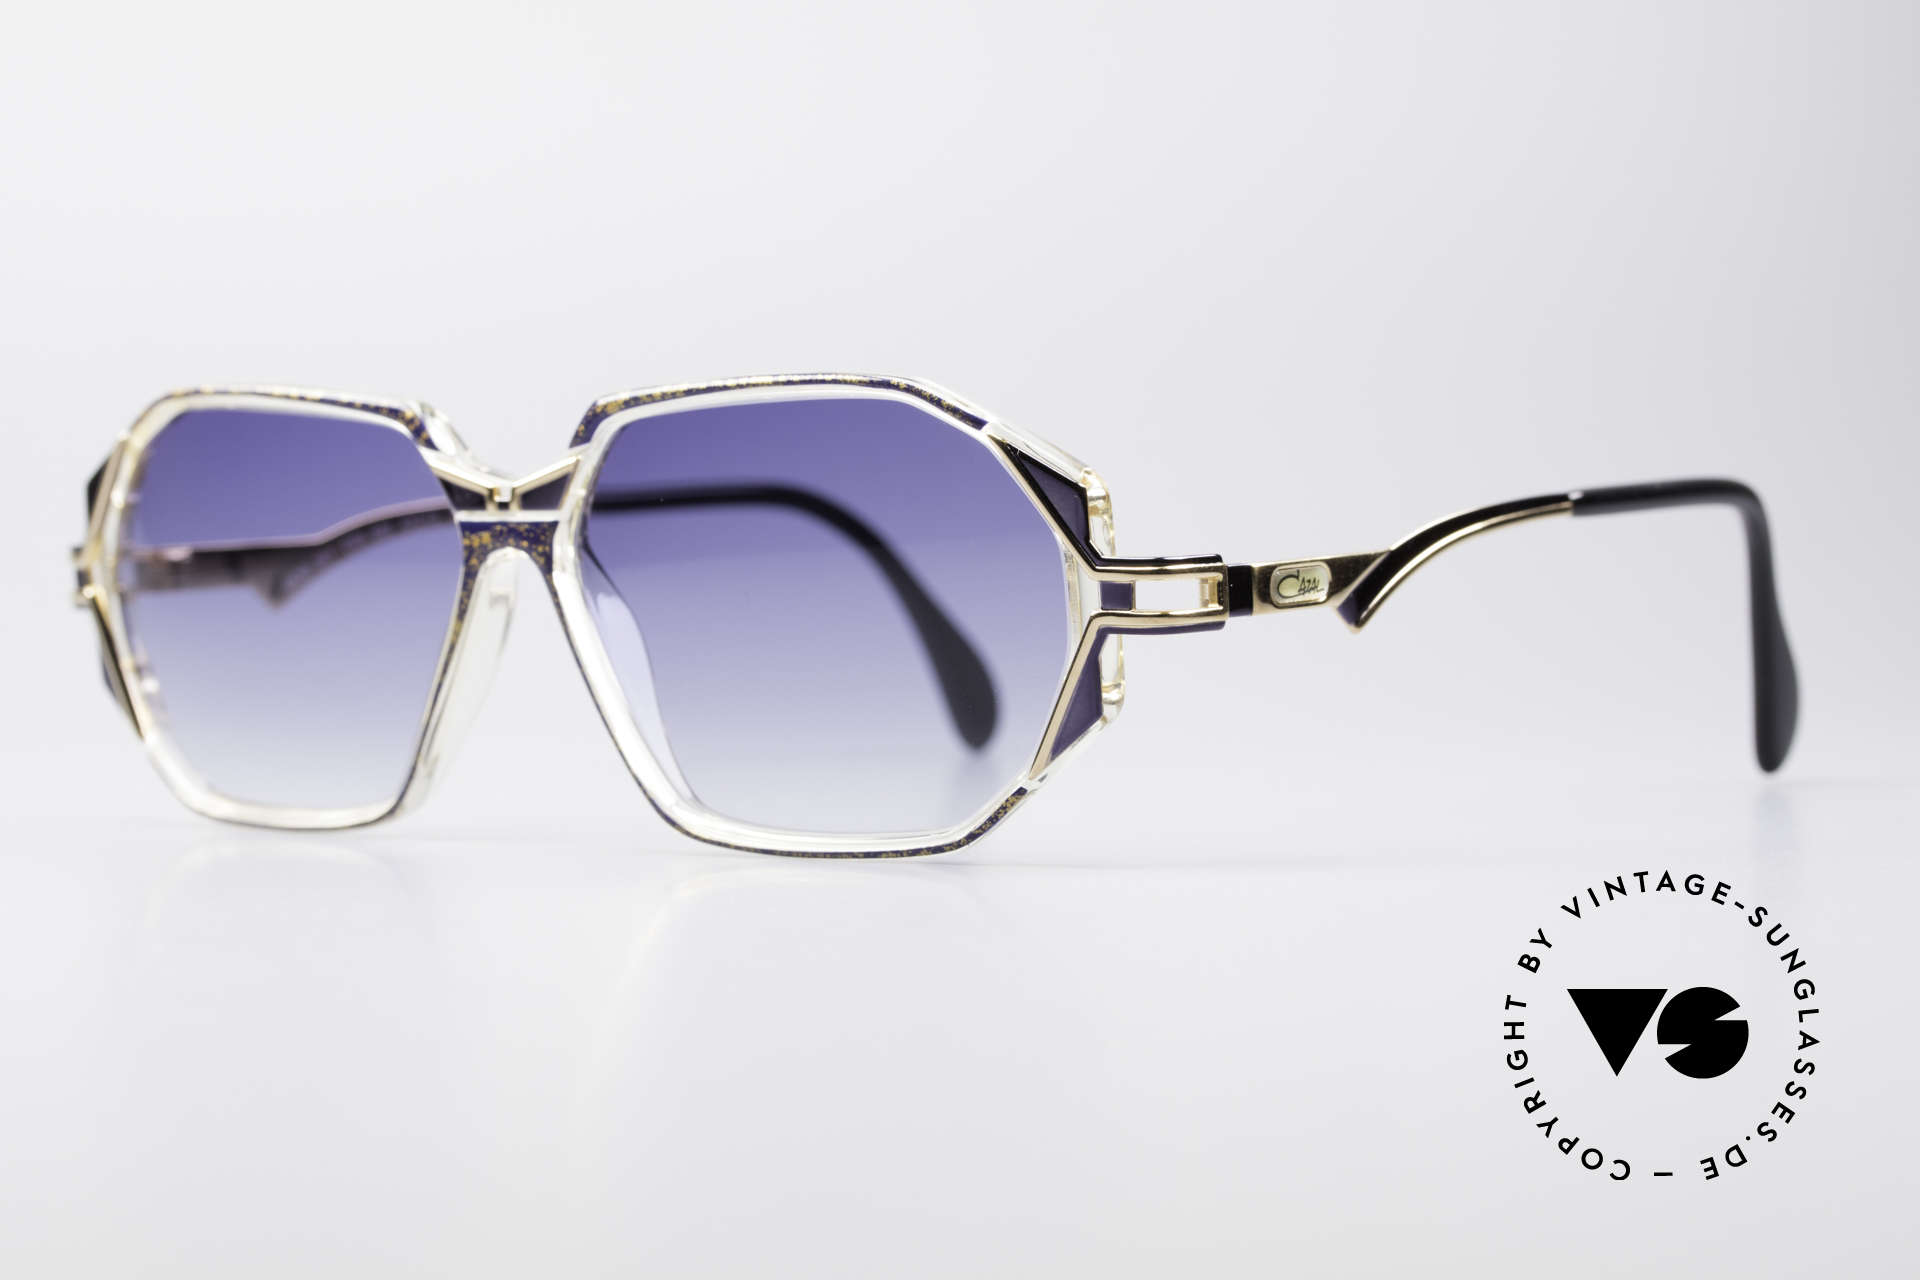 Cazal 361 Designer Sunglasses No Retro, glamorous combination of materials & colors; just fancy, Made for Women